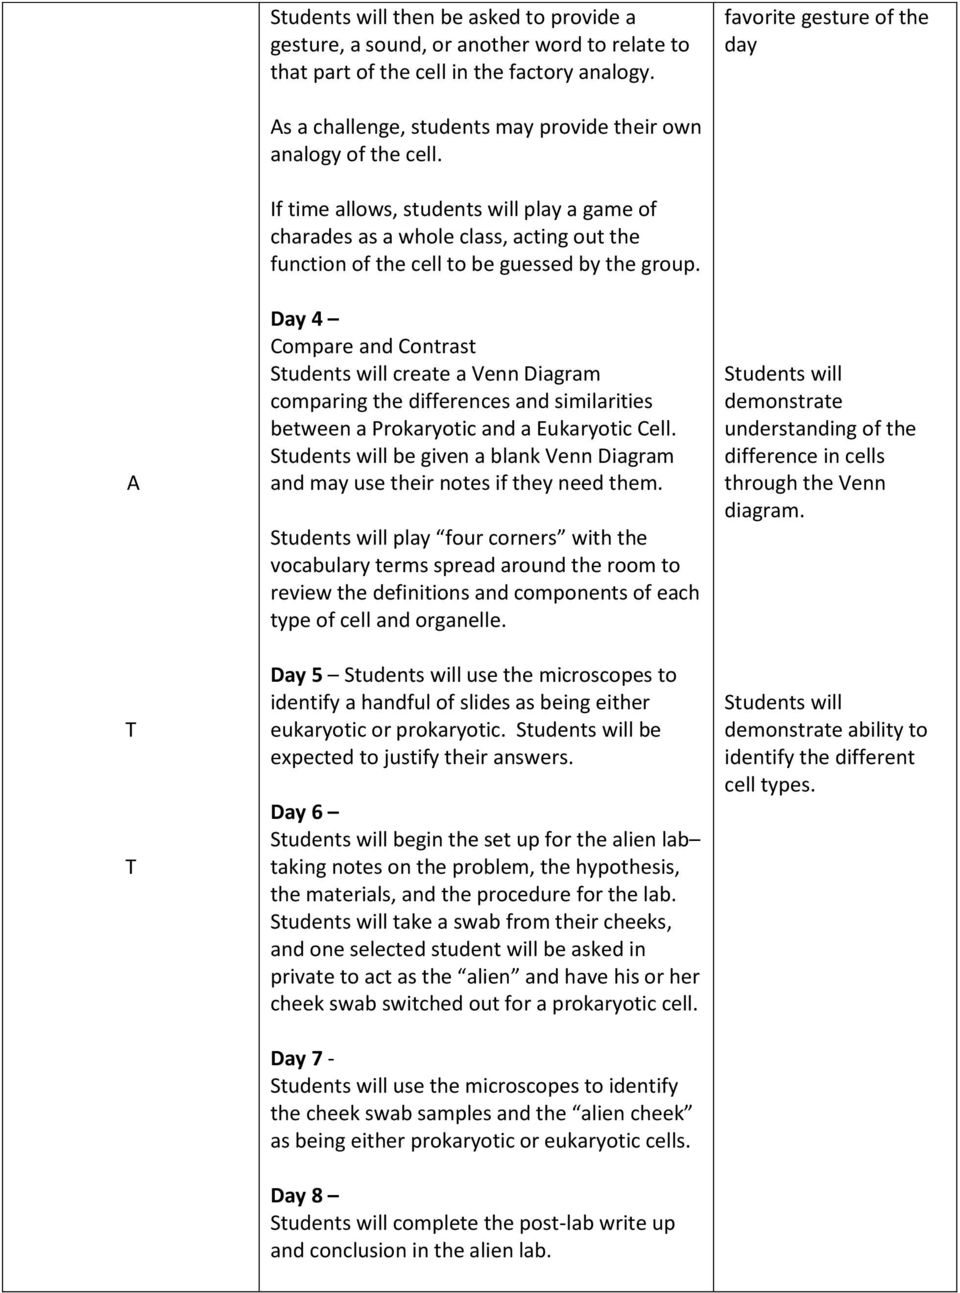 Prokaryotic and eukaryotic cells 6th grade pdf if time allows students will play a game of charades as a whole class pooptronica Choice Image